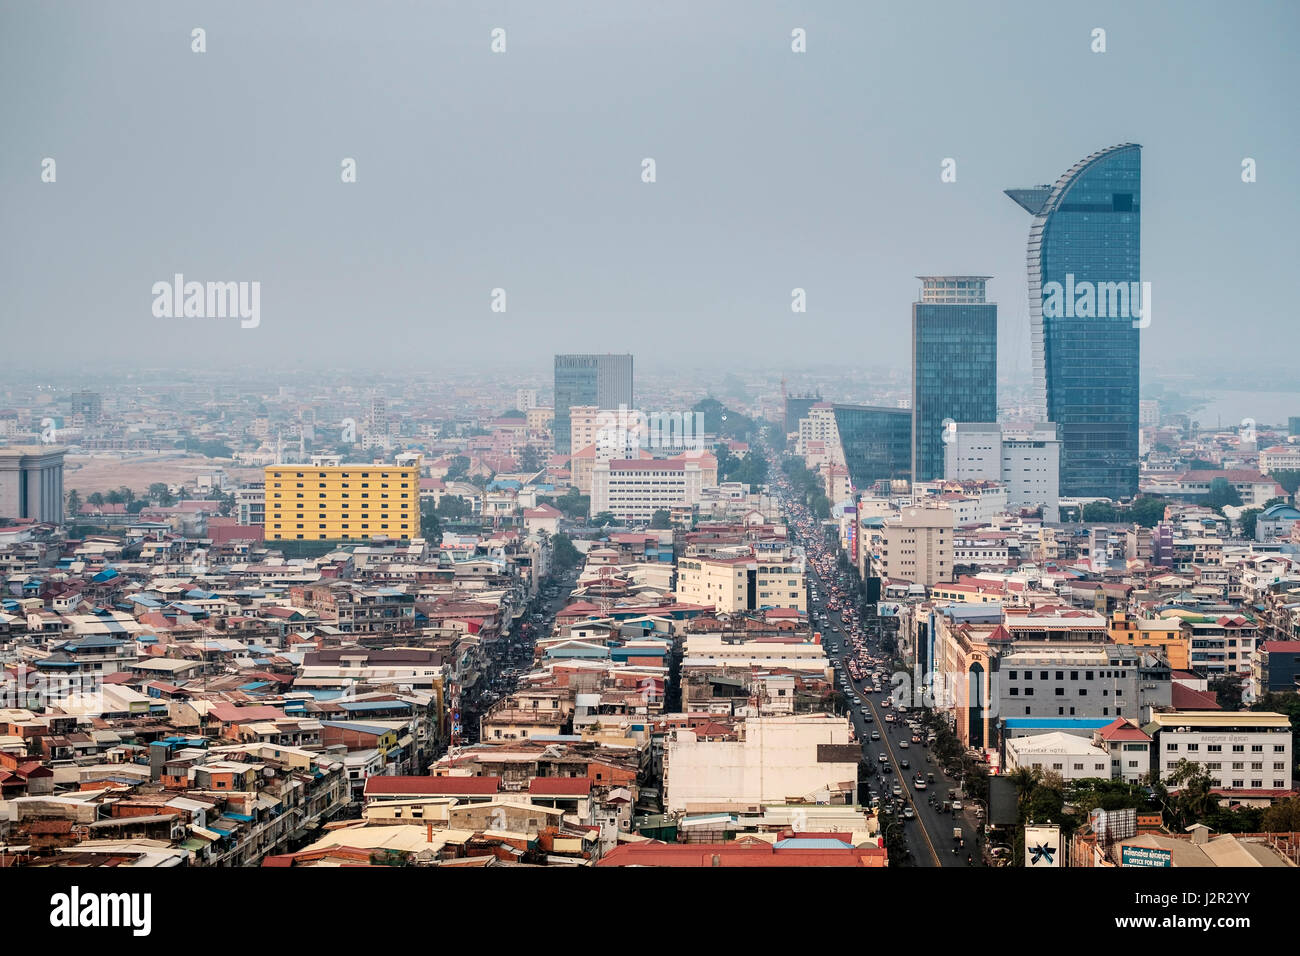 Phnom Penh city centre and skyline - Cambodia's capital city on a smoggy day - Stock Image